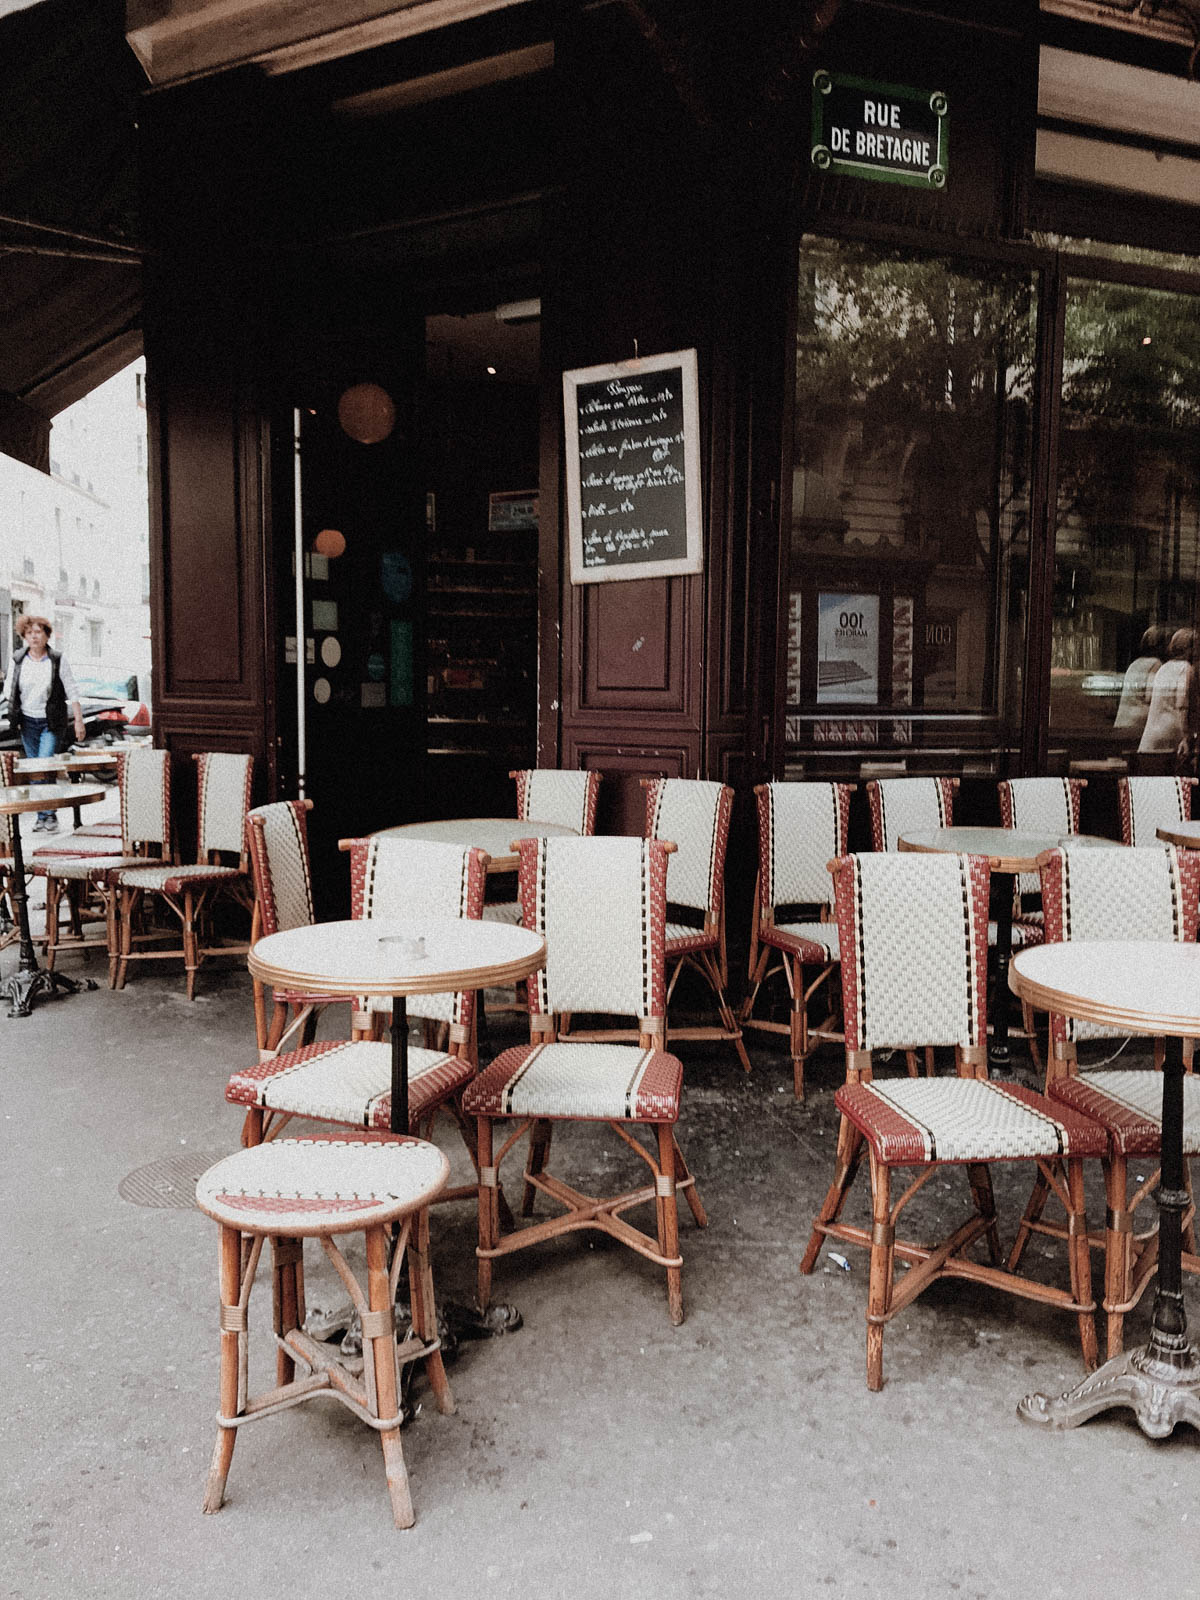 French Cafe Interior : french, interior, Paris-france-travel-guide-architecture-cafes-rg-daily-blog-105, Daily